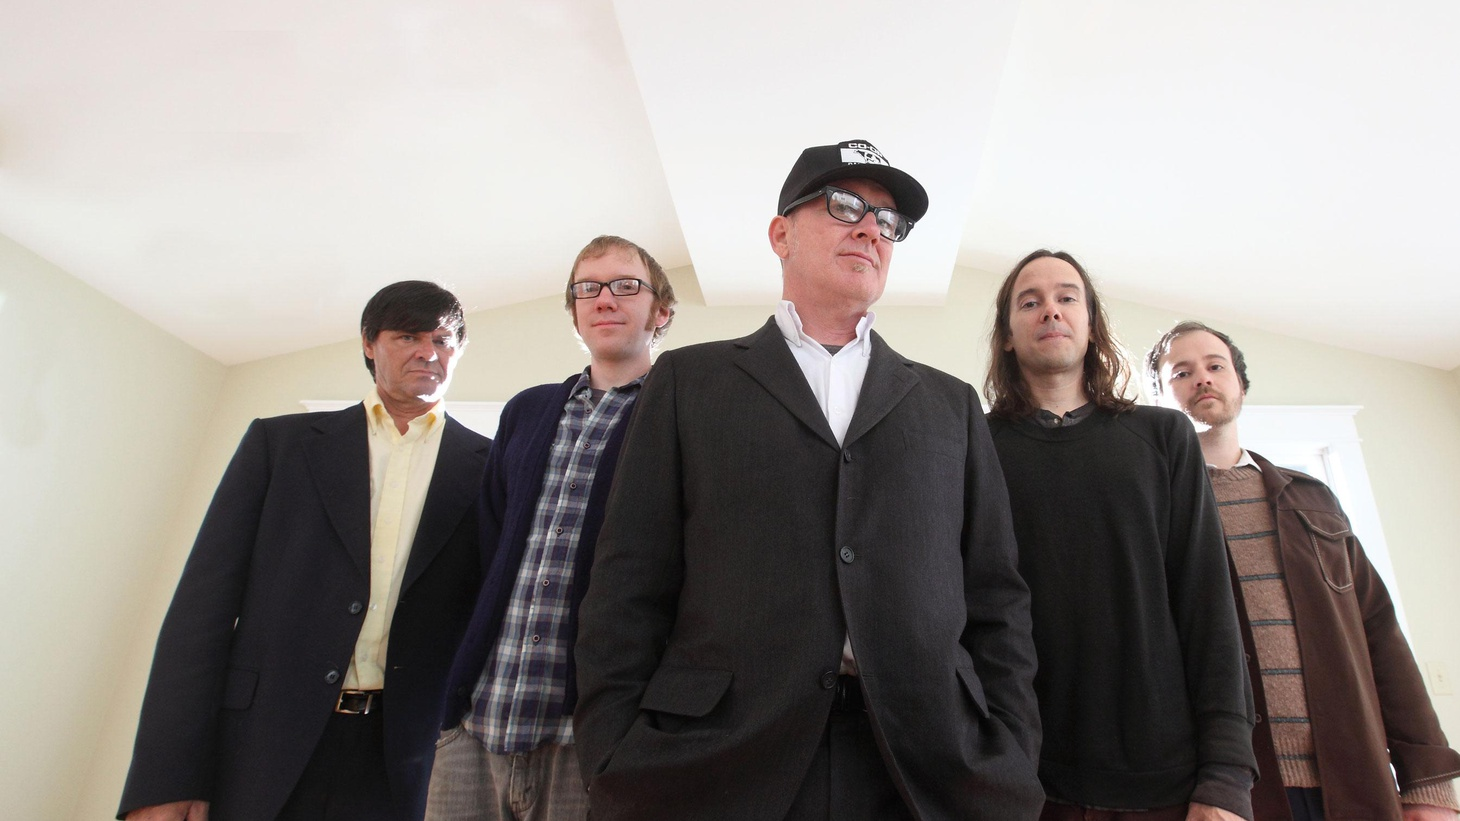 Lambchop is the moniker for Kurt Wagner whose deep baritone is surrounded by an ensemble of impeccable musicianship and soft spacious arrangements.